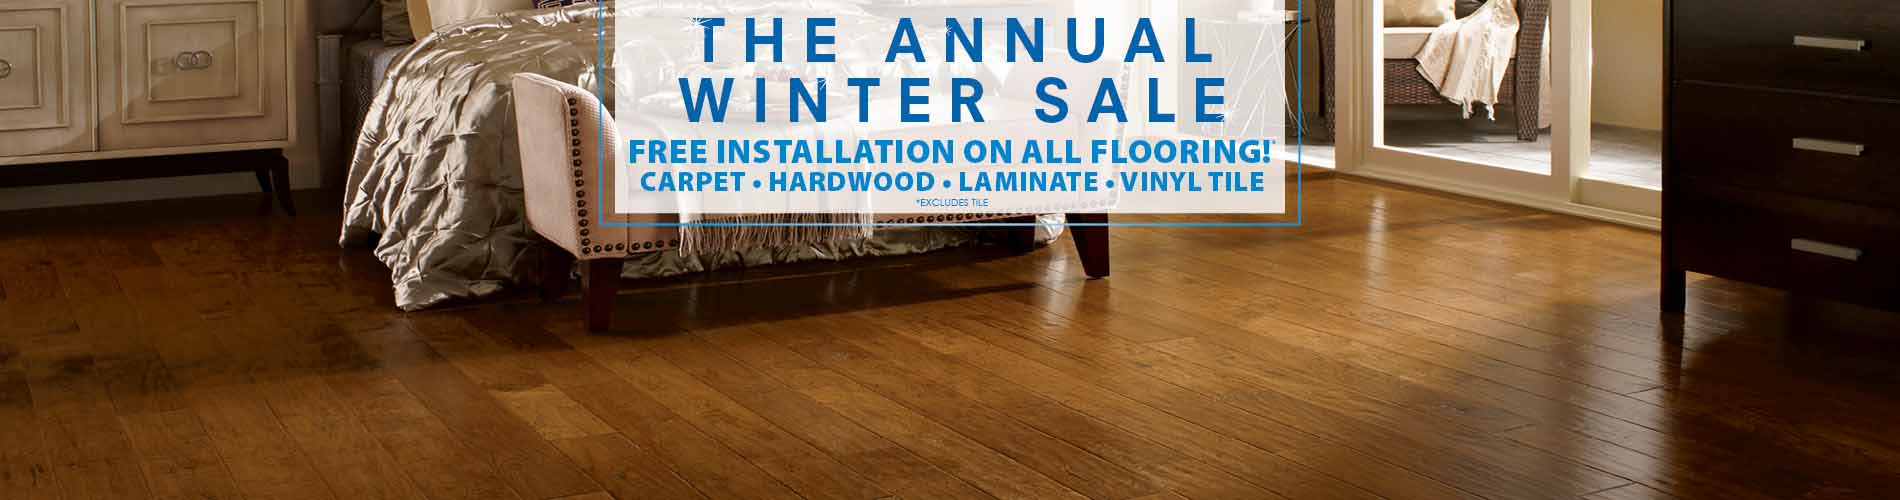 Free installation on all flooring!* carpet, hardwood, laminate, vinyl tile!  *Excludes tile.